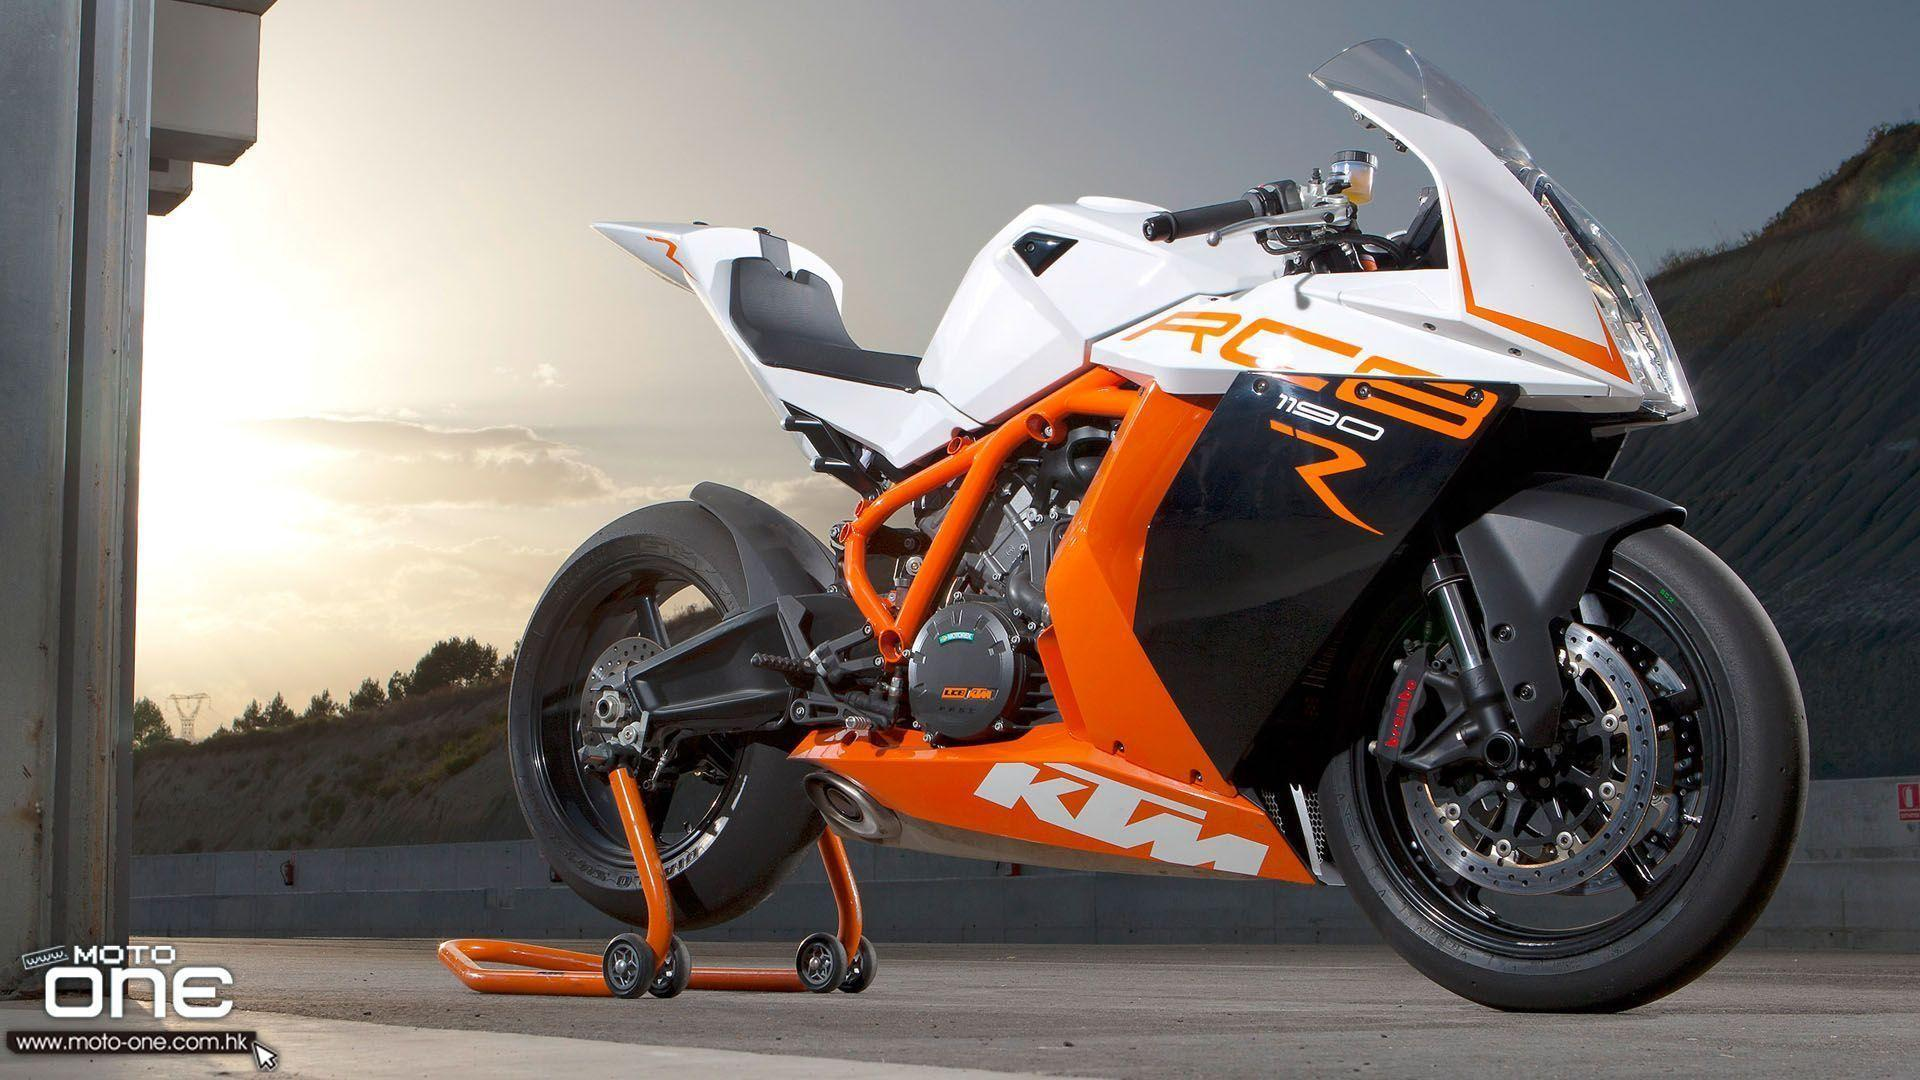 1920x1080 - KTM RC8 Wallpapers 14